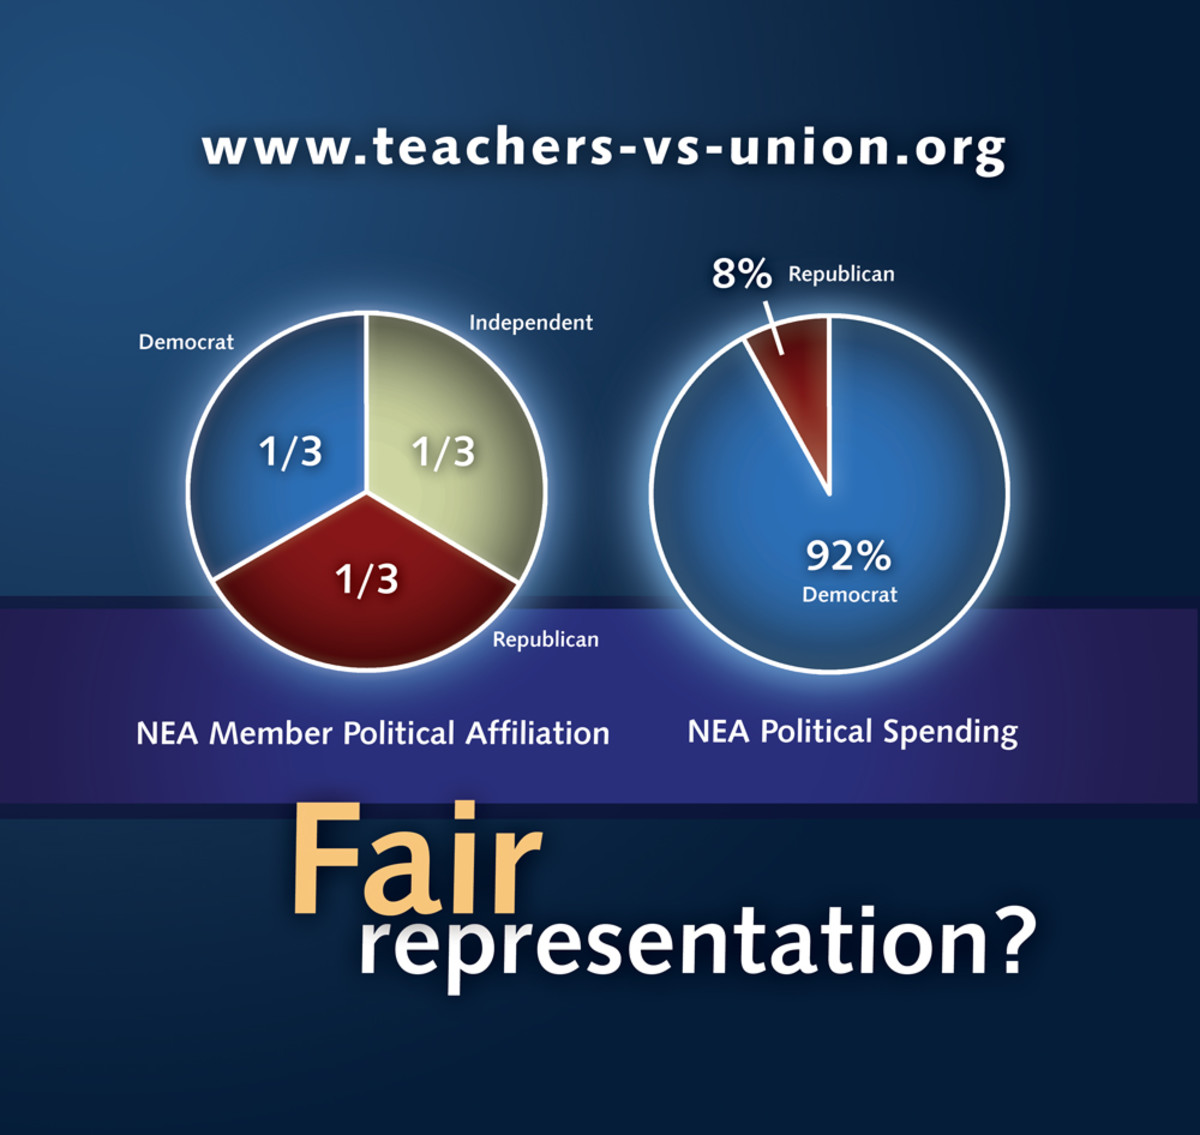 THE NATIONAL EDUCATION IS A POLITICAL ARM OF THE DEMOCRATIC PARTY